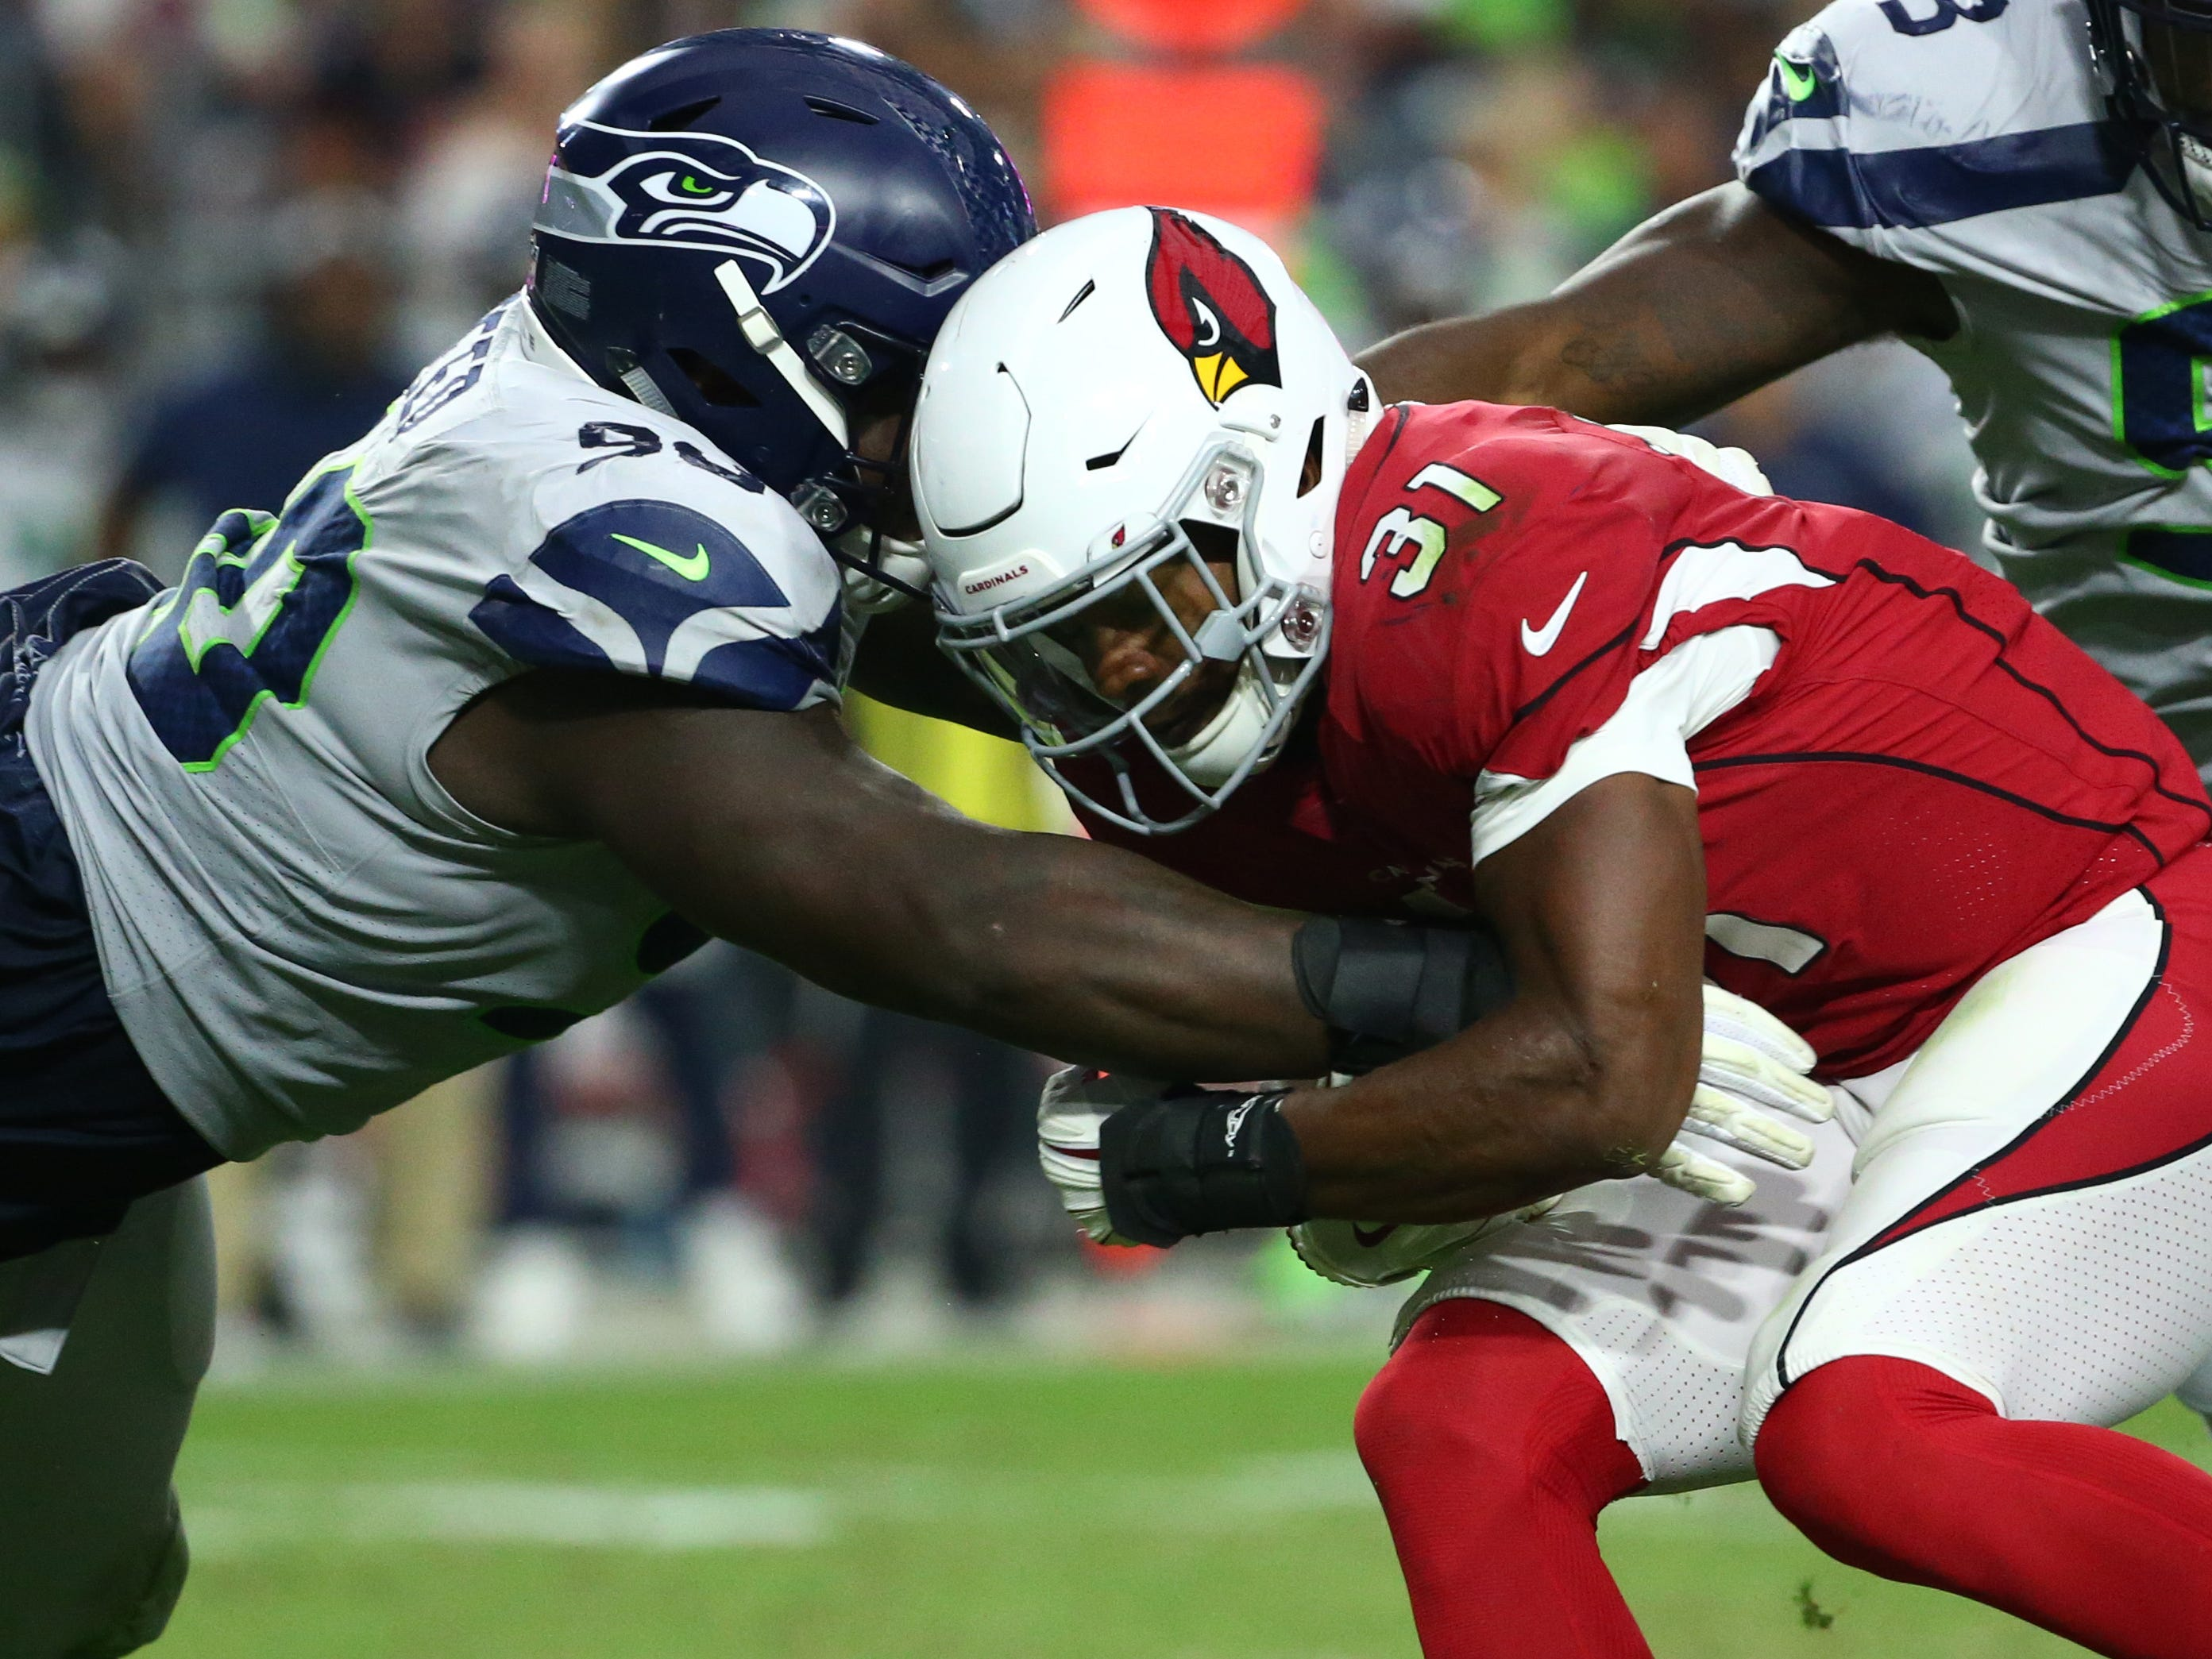 Arizona Cardinals David Johnson is tackled by Seattle Seahawks Jarran Reed in the second half at State Farm Stadium in Glendale, Ariz.